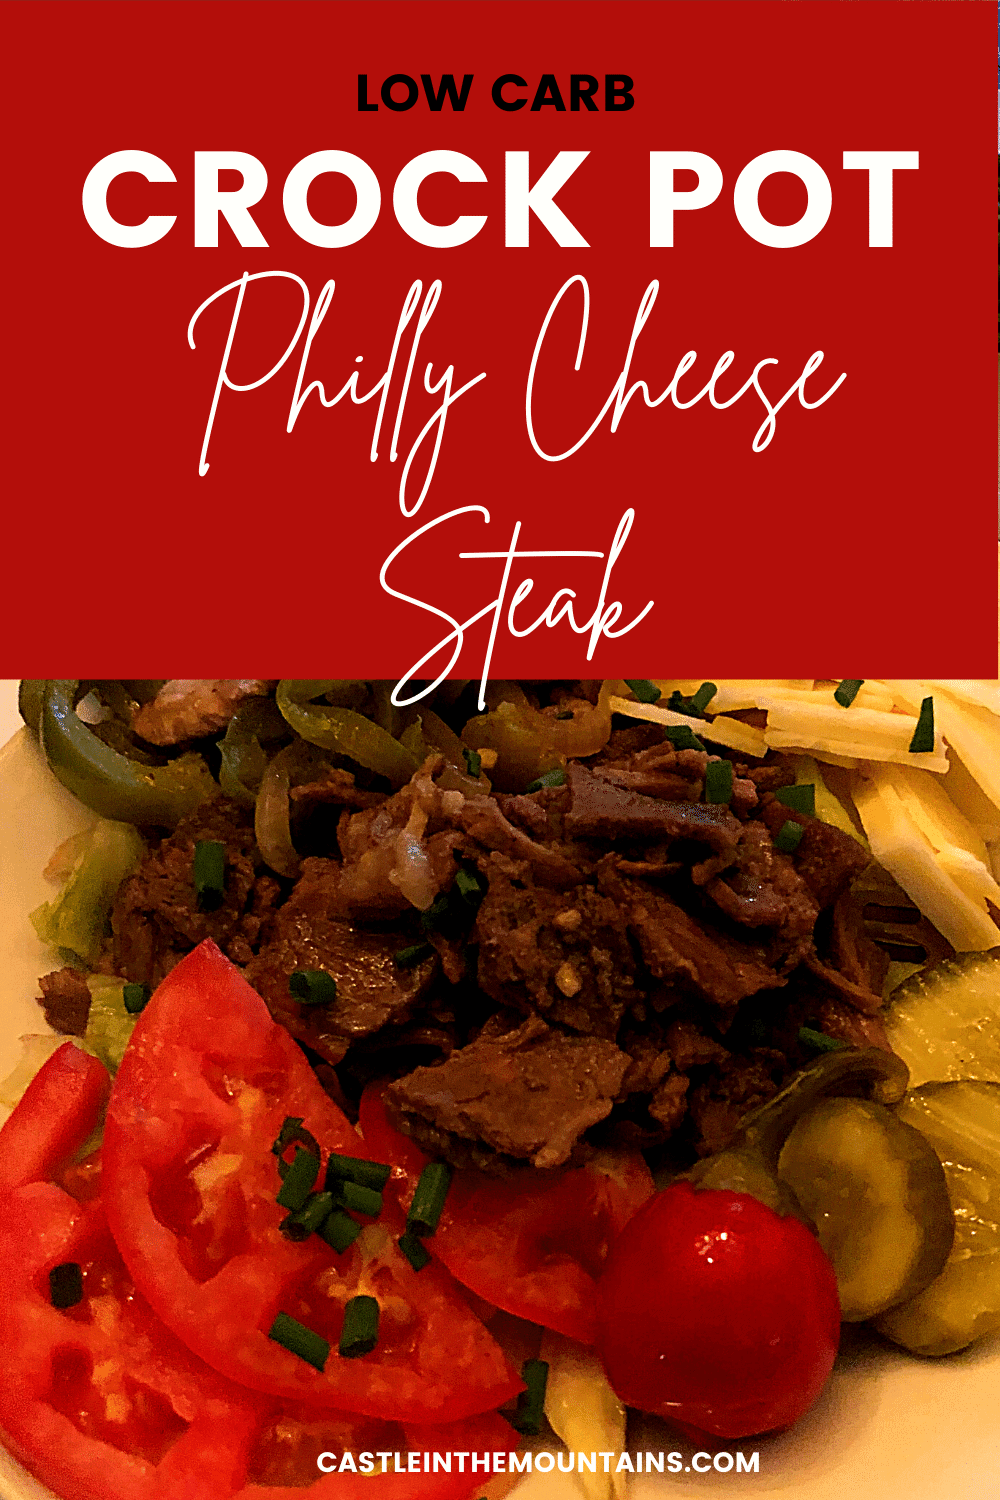 Crock Pot Philly Cheese Steak